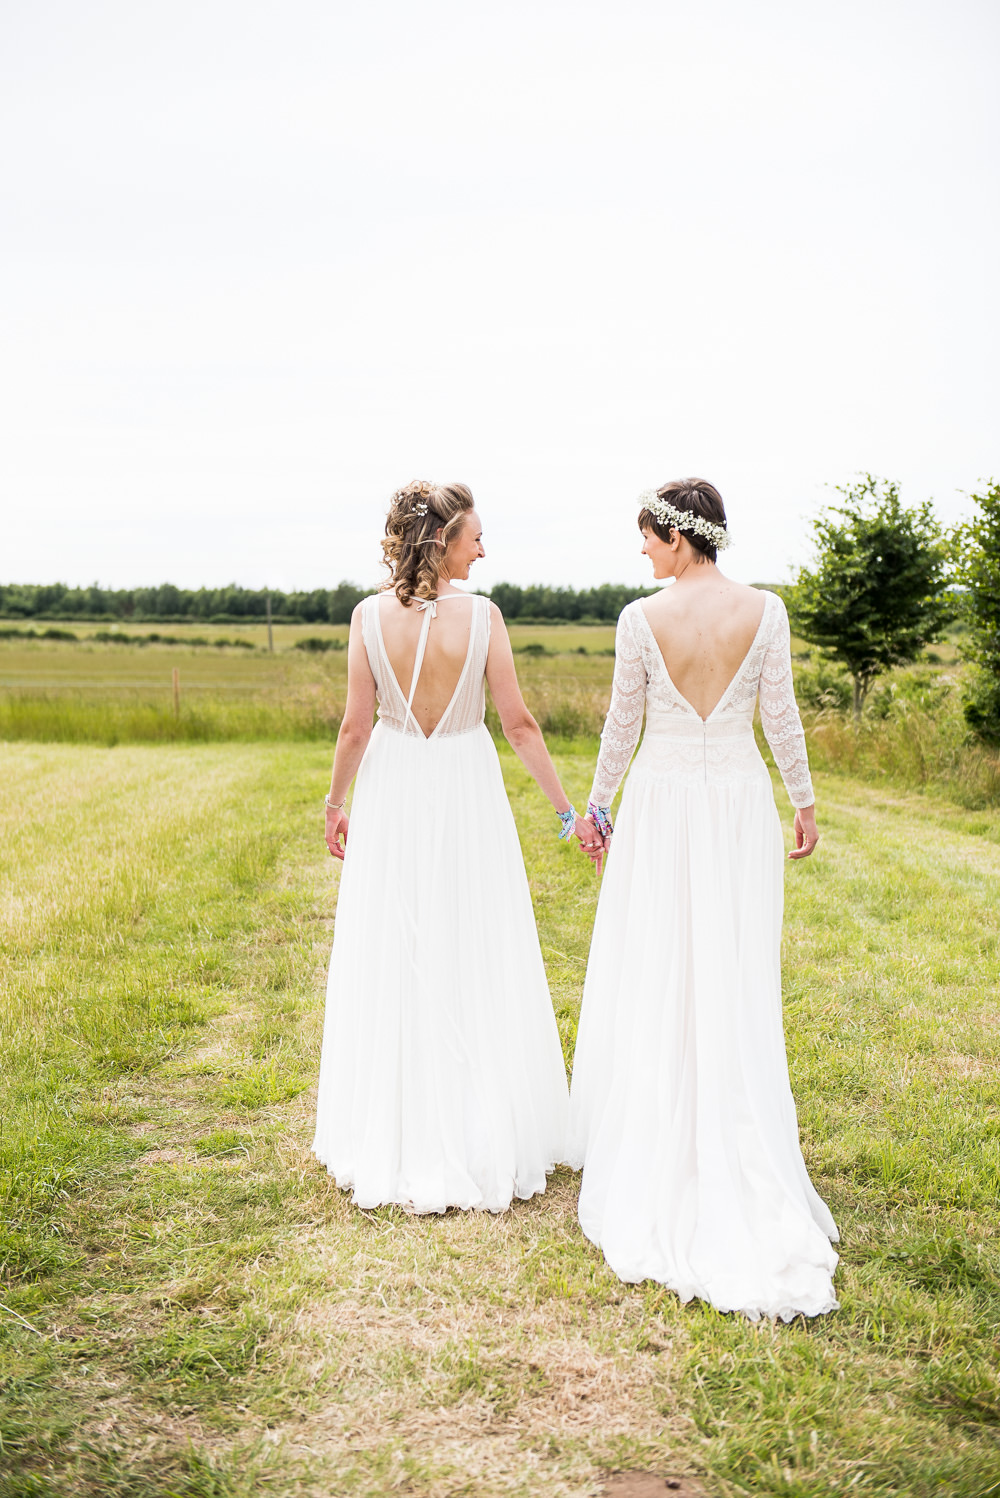 Bride Bridal Long Sleeve Lace Dress Lace Sleeveless Gypsophila Crown V Back Inkersall Grange Farm Wedding Jessica Grace Photography